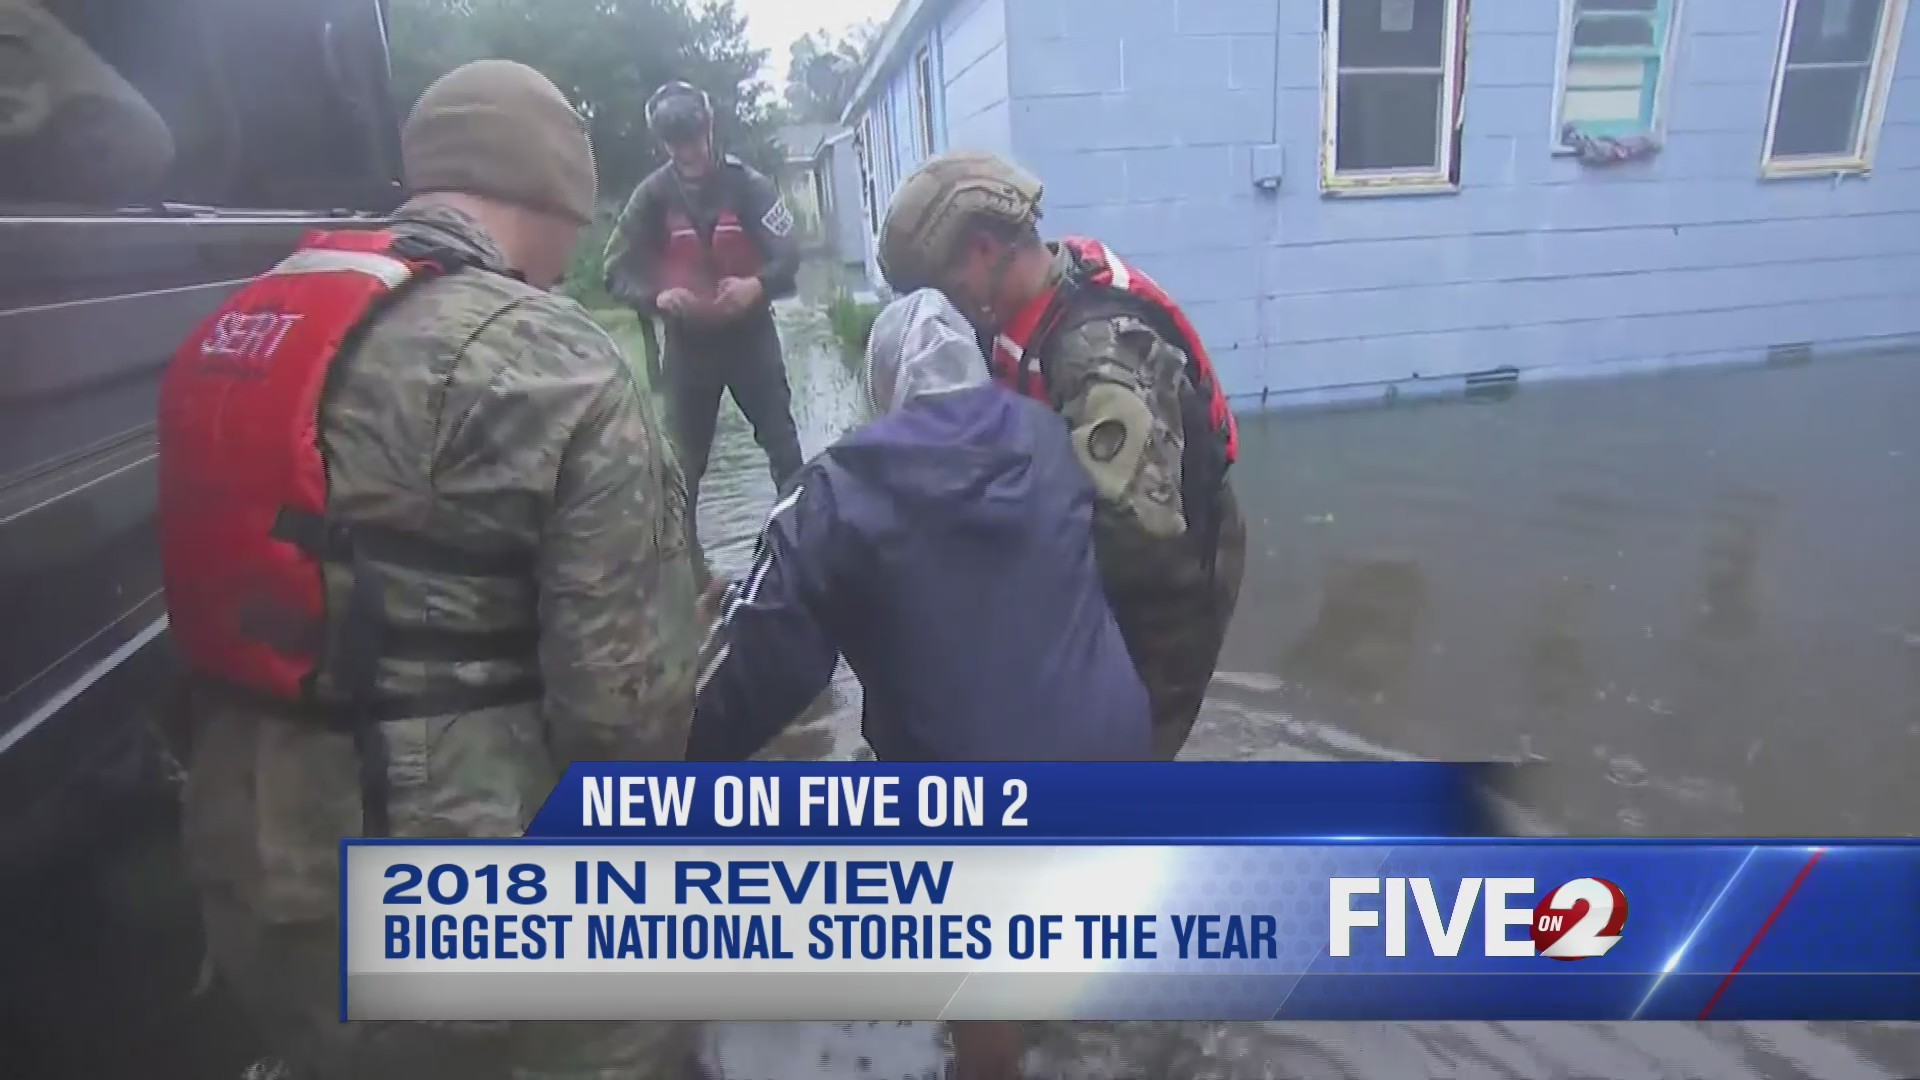 2018 in review: Biggest national stories of the year